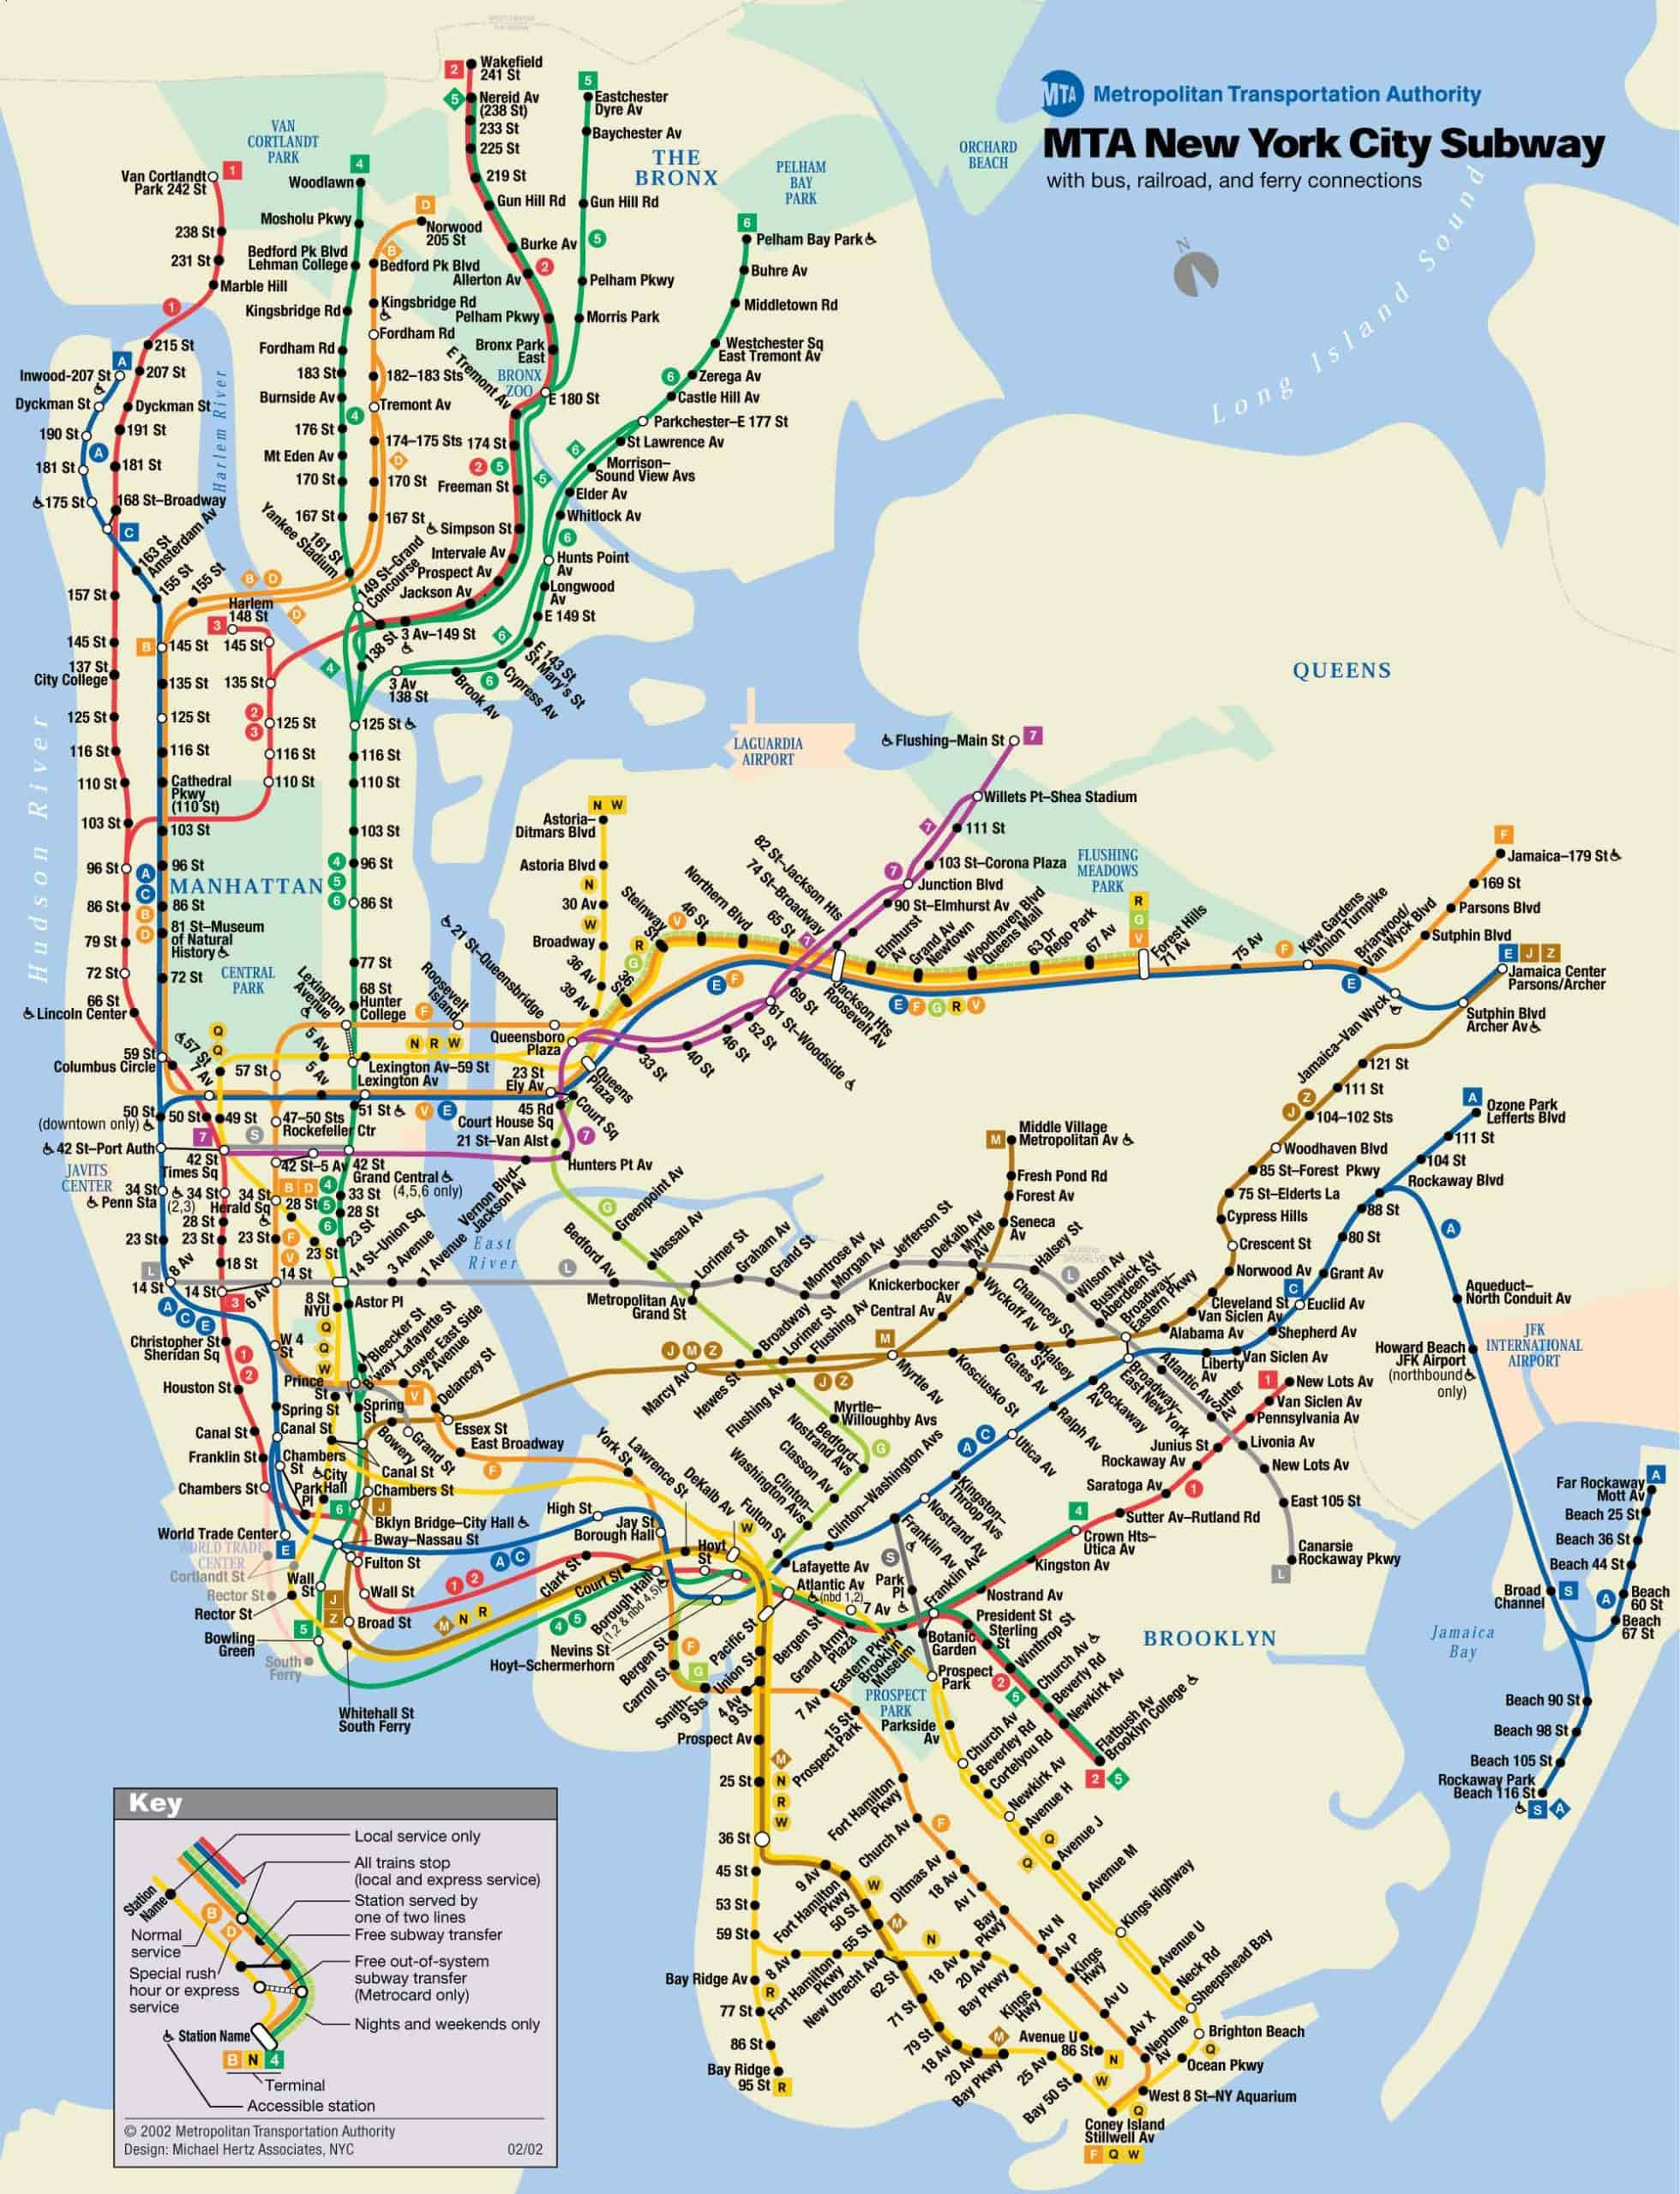 Subway Maps Of Nyc.Michael Hertz Designer Of Nyc S Iconic Subway Map Dies At 87